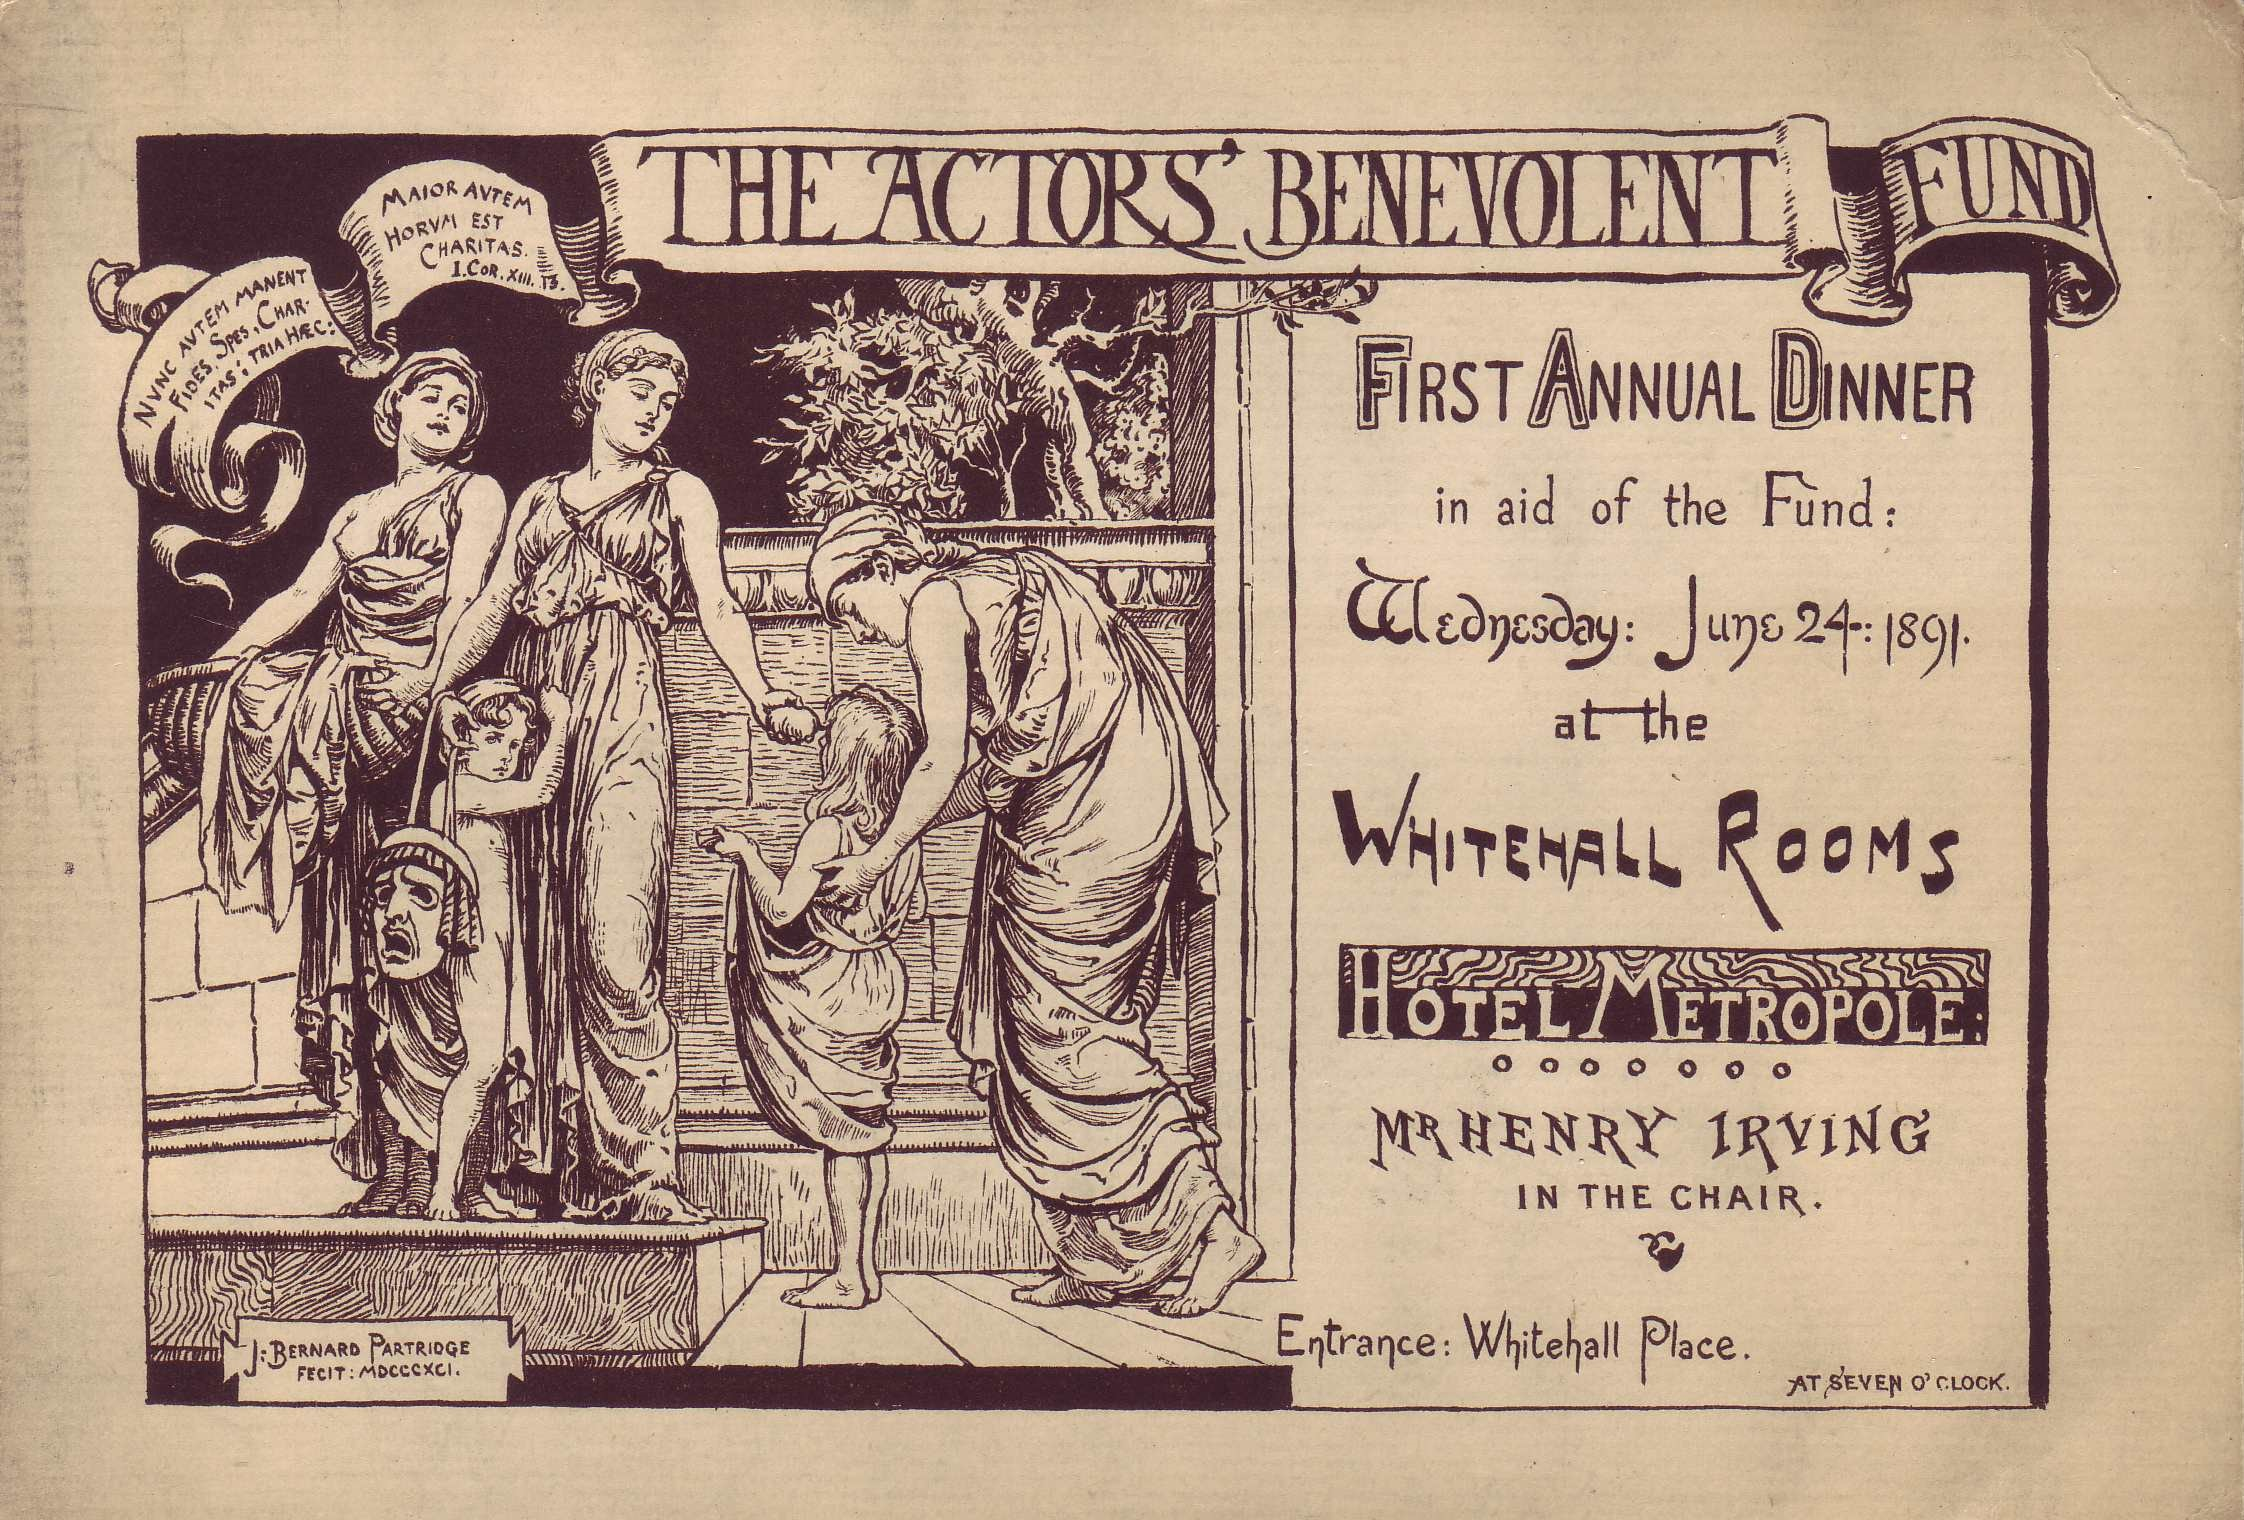 Flyer for the ABF's First Annual Dinner, 1891